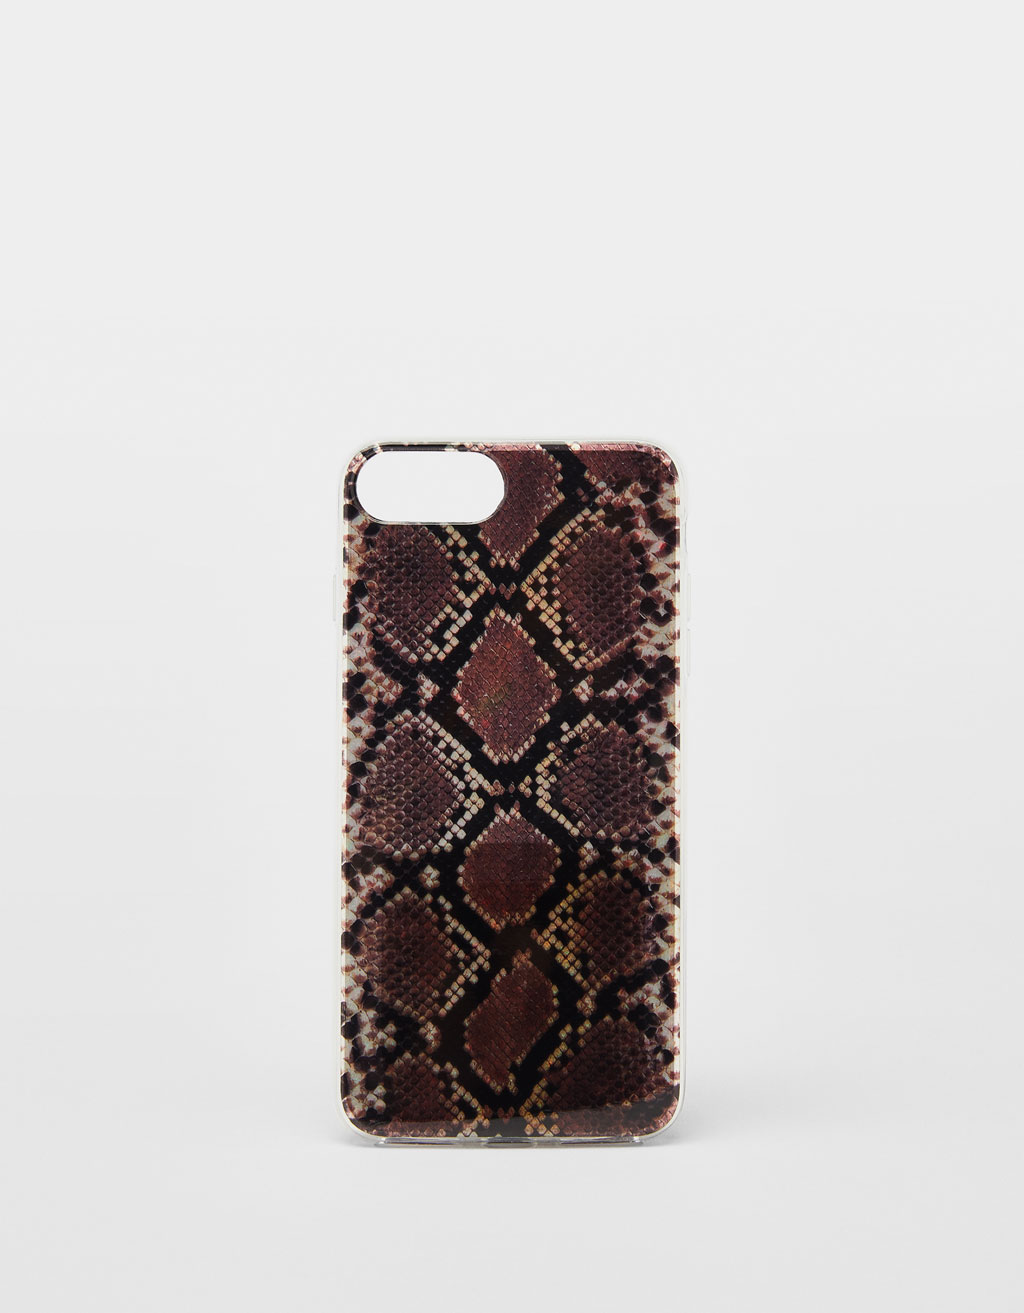 Snakeskin print iPhone 6 Plus/7 Plus/8 Plus case